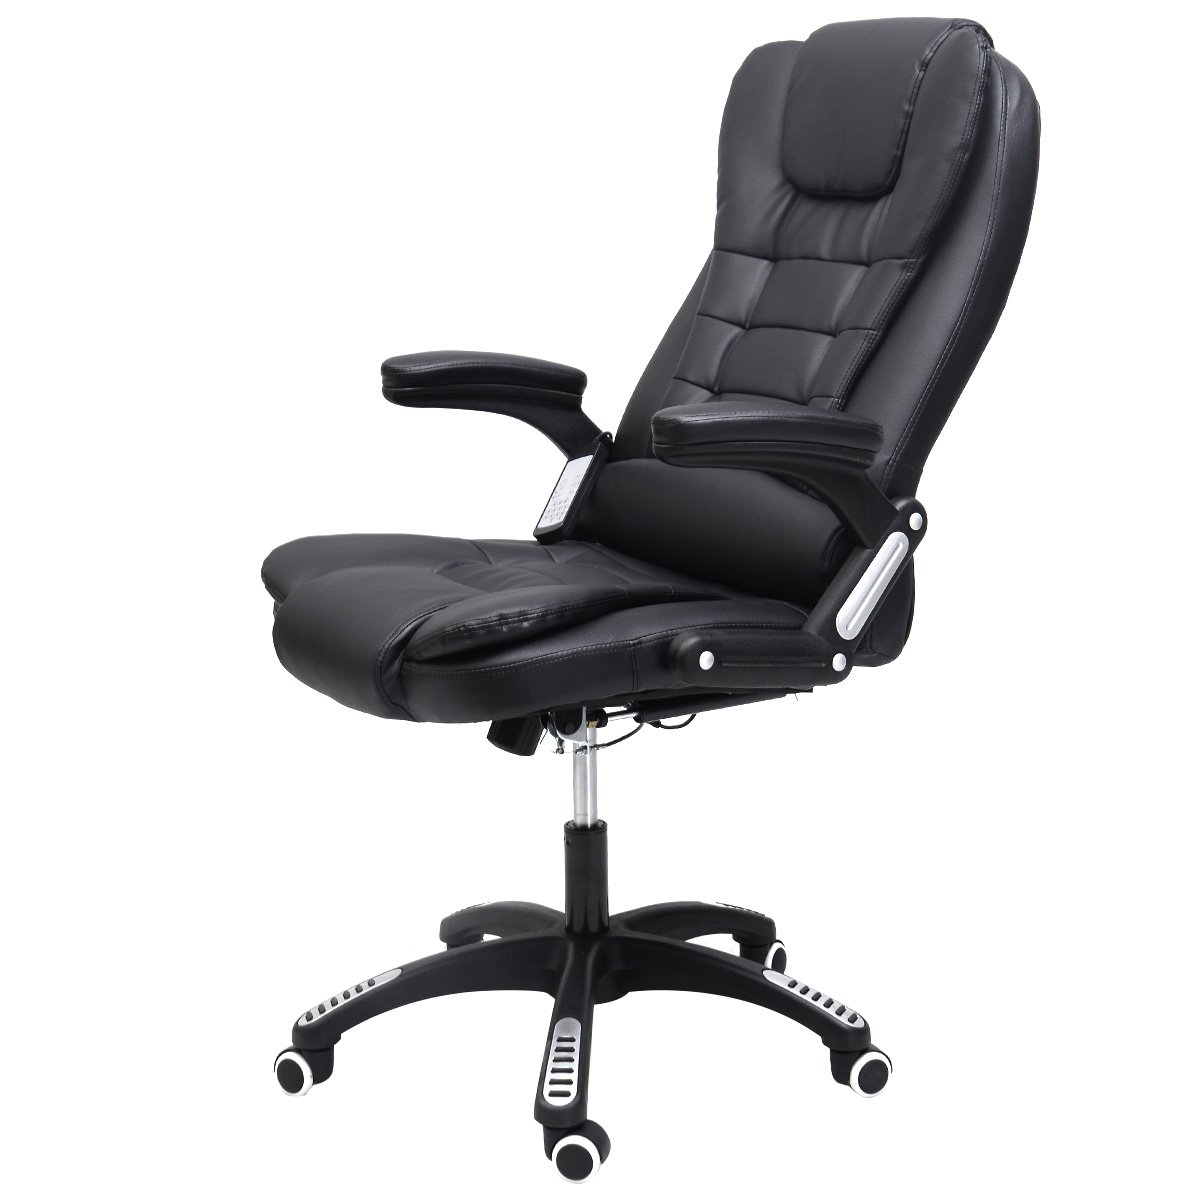 amazon com tangkula office massage chair executive ergonomic